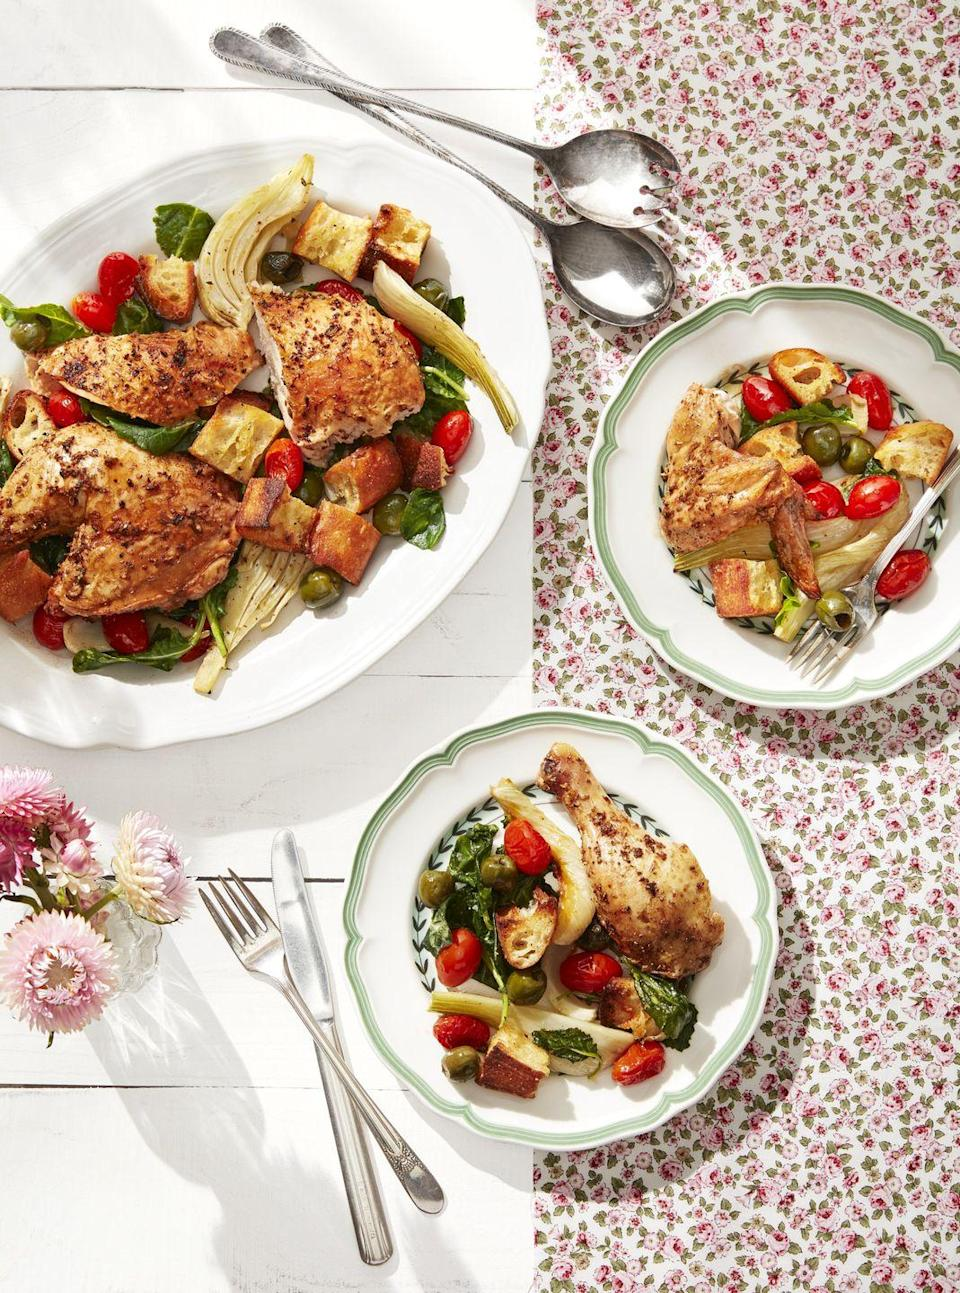 "<p>The genius of this recipe? Everything roasts together, which both melds the flavors and makes cooking and cleanup a breeze.</p><p><strong><a href=""https://www.countryliving.com/food-drinks/a30613306/roasted-chicken-with-fennel-tomatoes-recipe/"" rel=""nofollow noopener"" target=""_blank"" data-ylk=""slk:Get the recipe"" class=""link rapid-noclick-resp"">Get the recipe</a>.</strong></p><p><strong><a class=""link rapid-noclick-resp"" href=""https://www.amazon.com/dp/B00282JL7G?tag=syn-yahoo-20&ascsubtag=%5Bartid%7C10050.g.34100795%5Bsrc%7Cyahoo-us"" rel=""nofollow noopener"" target=""_blank"" data-ylk=""slk:SHOP SHEET PANS"">SHOP SHEET PANS</a><br></strong></p>"